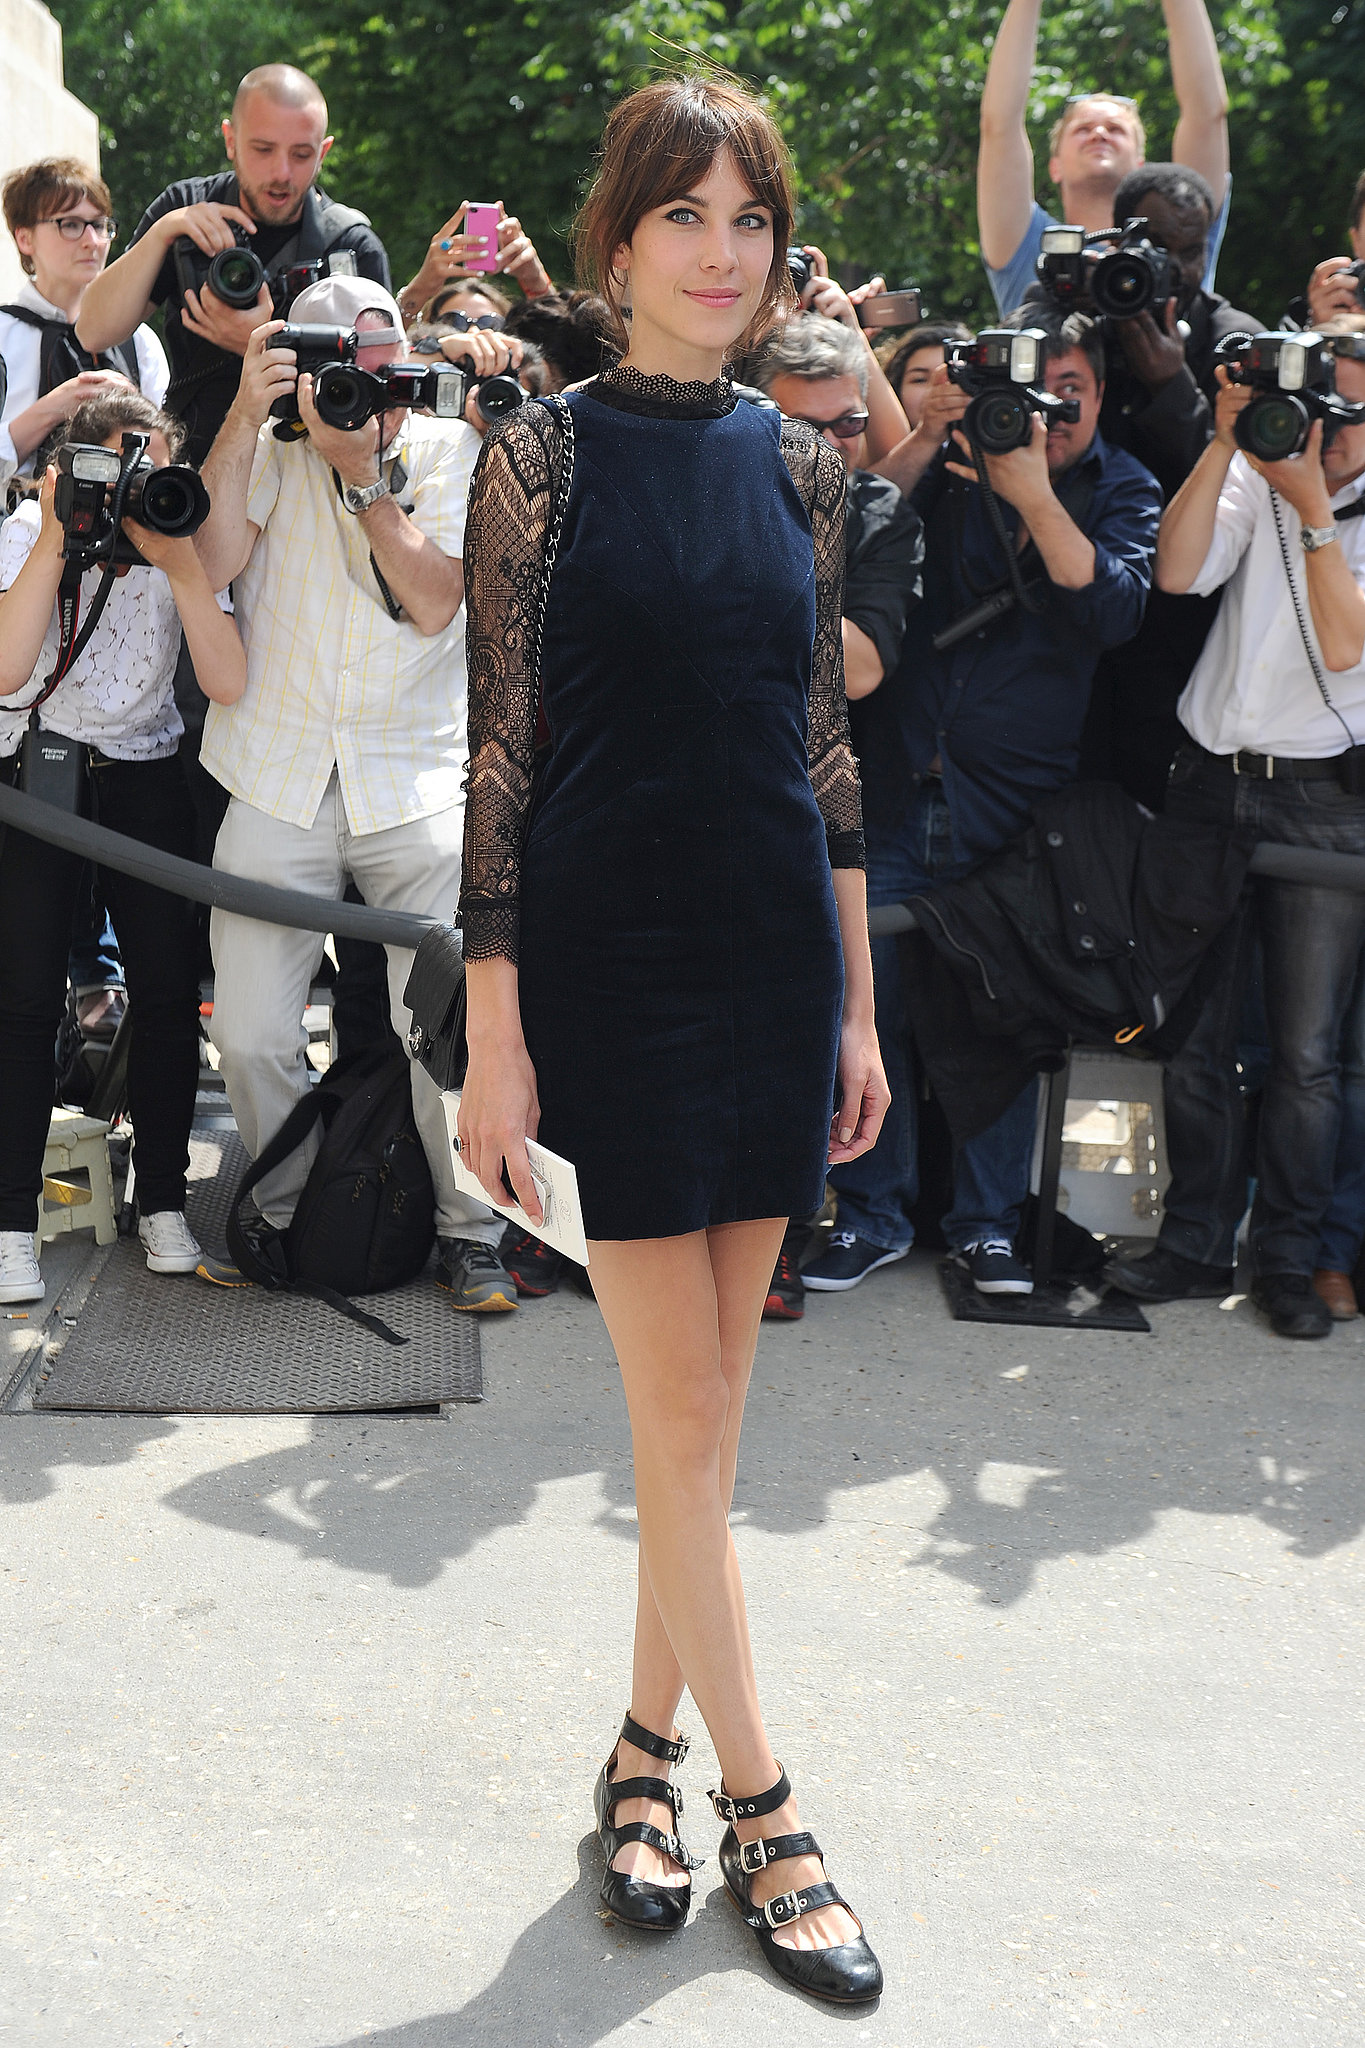 For the Chanel show, Alexa Chung chose a long-sleeved navy sheath and tribuckled flats.